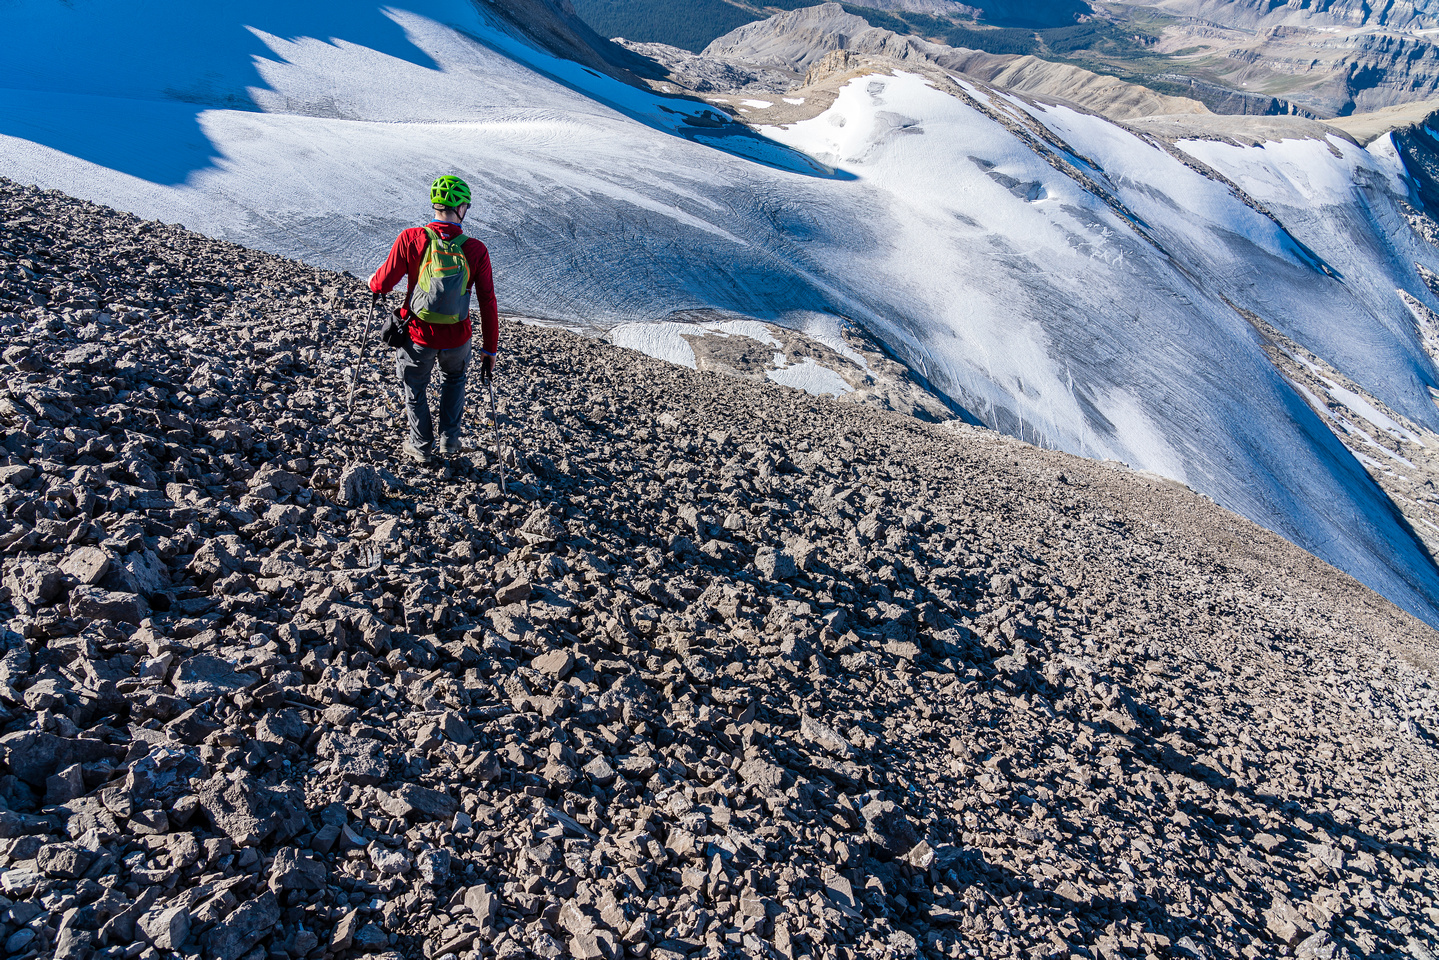 Starting the fast descent of the SW face.